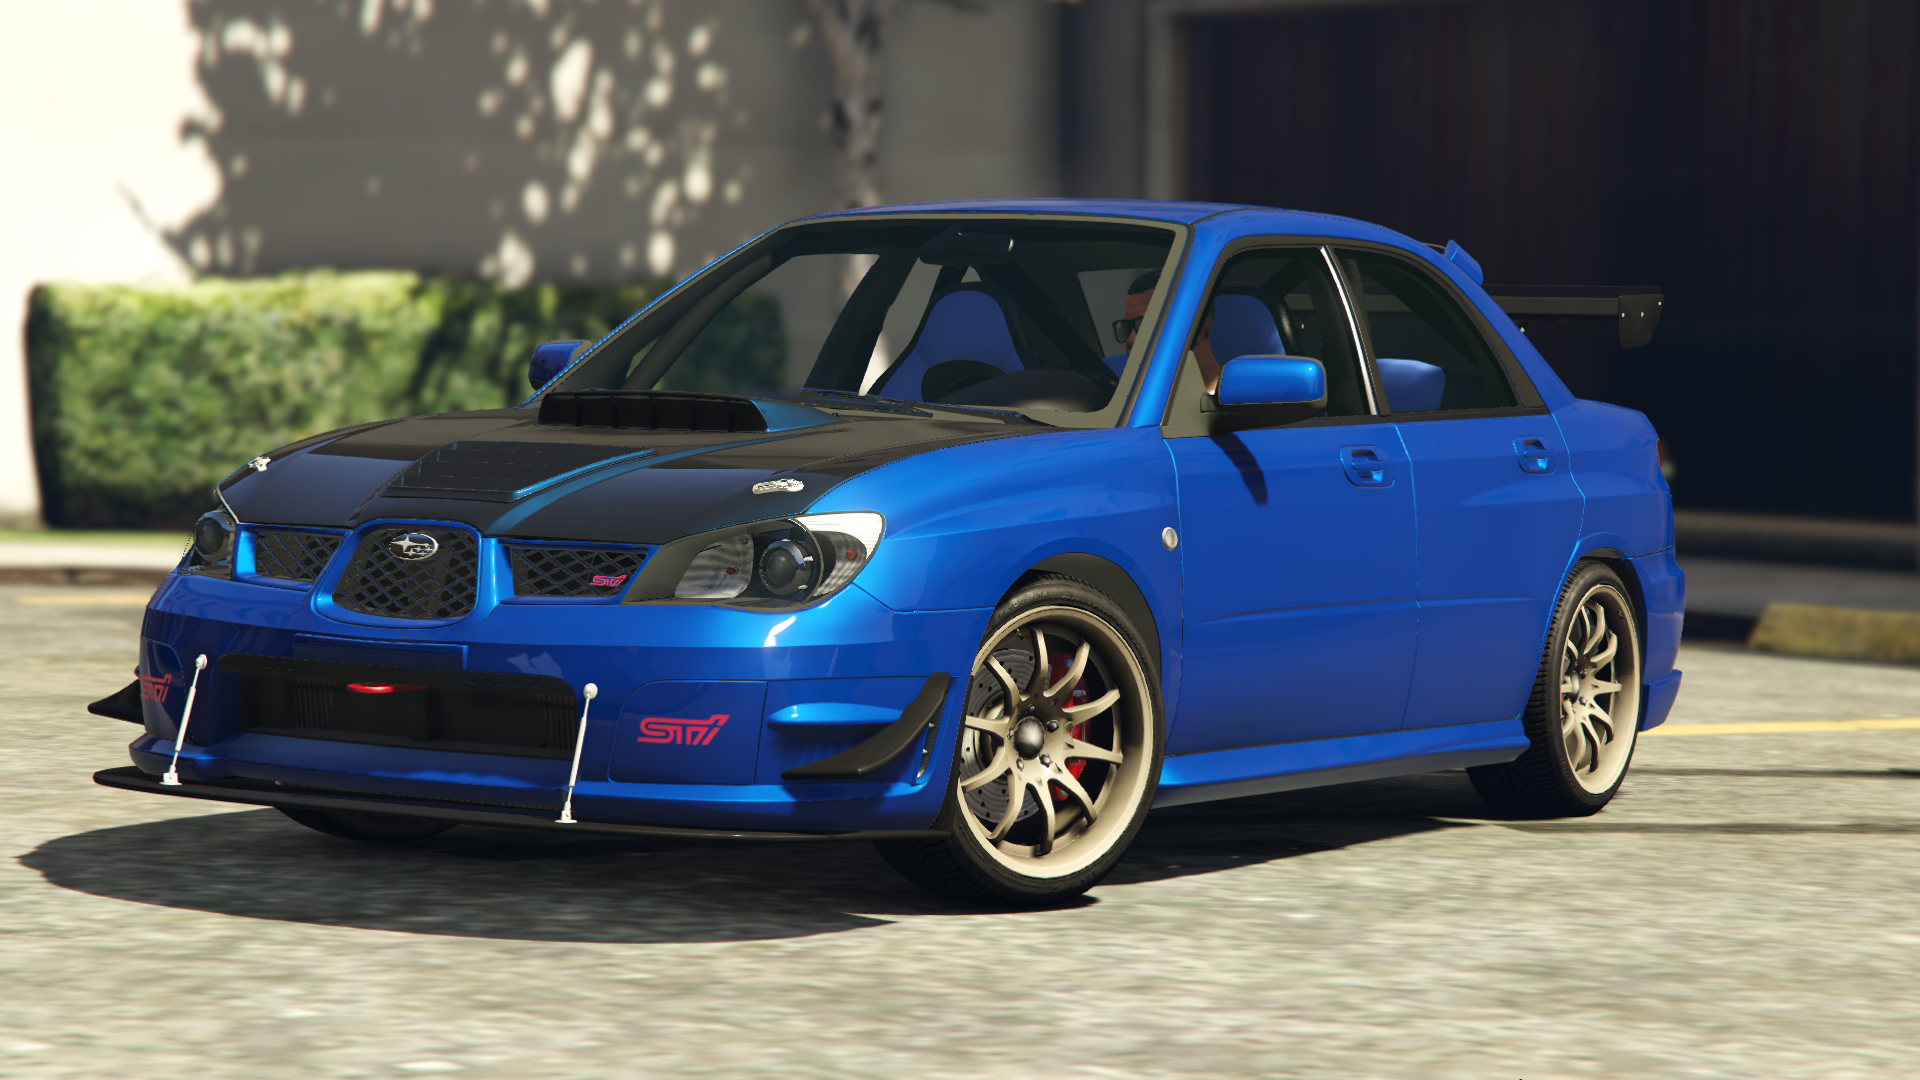 2006 subaru impreza wrx sti tuning gta5. Black Bedroom Furniture Sets. Home Design Ideas